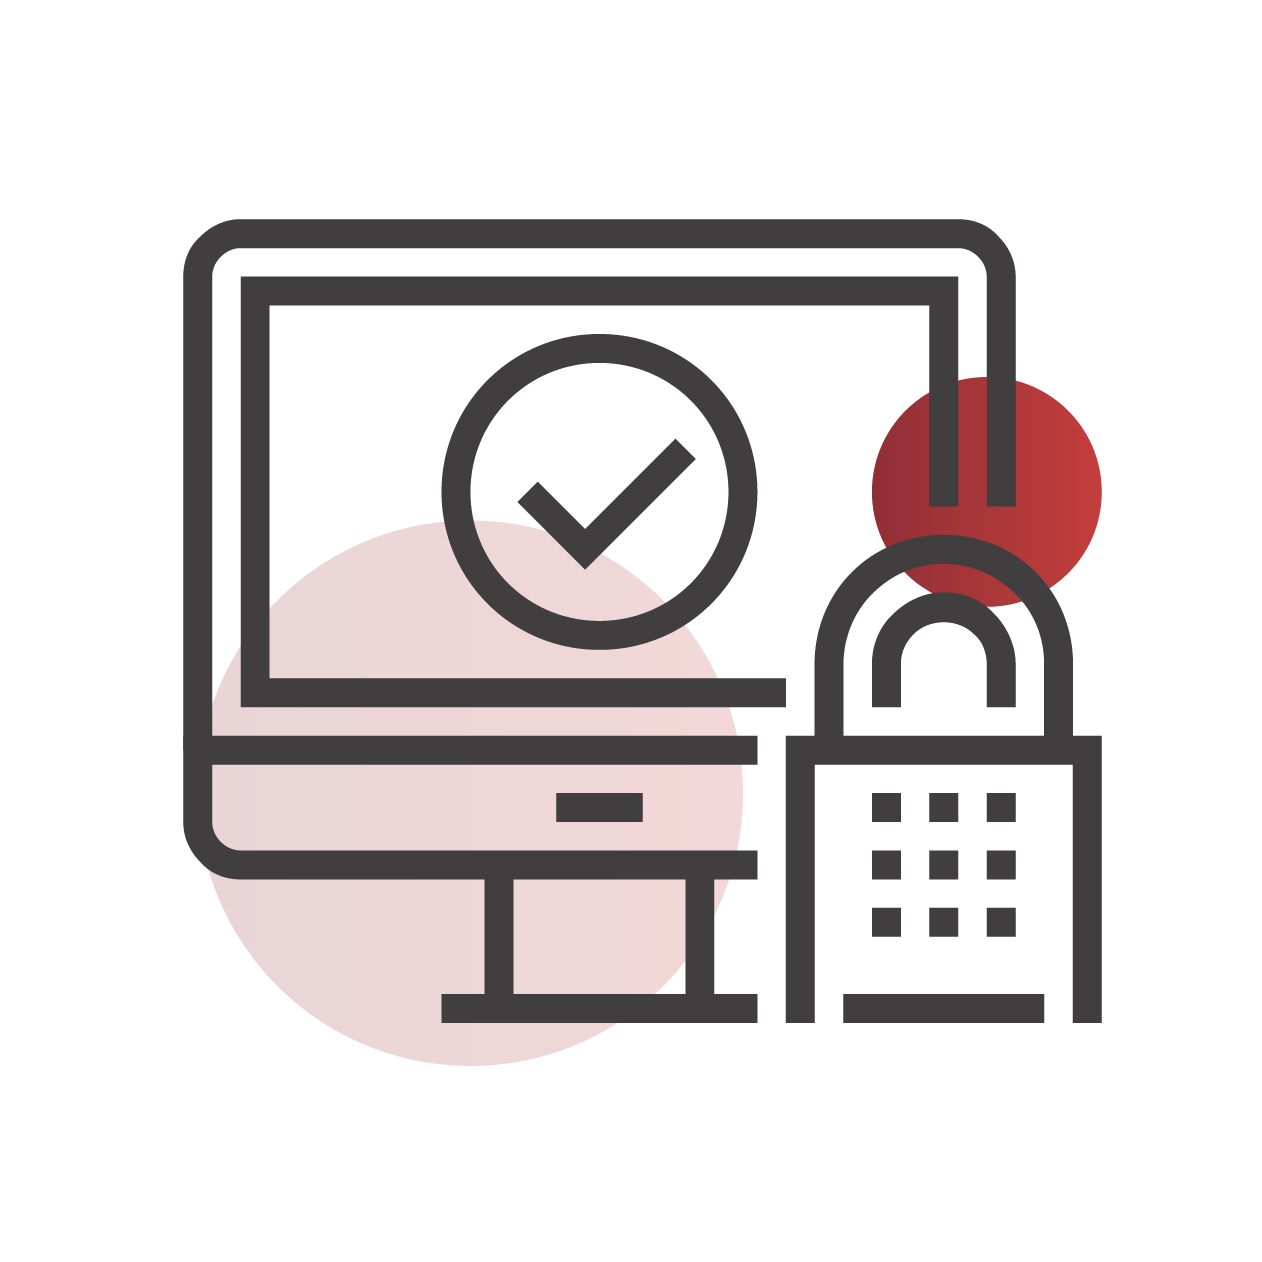 https://iassessonline.com/wp-content/uploads/2021/03/Icons_DATA-PROTECTION.png